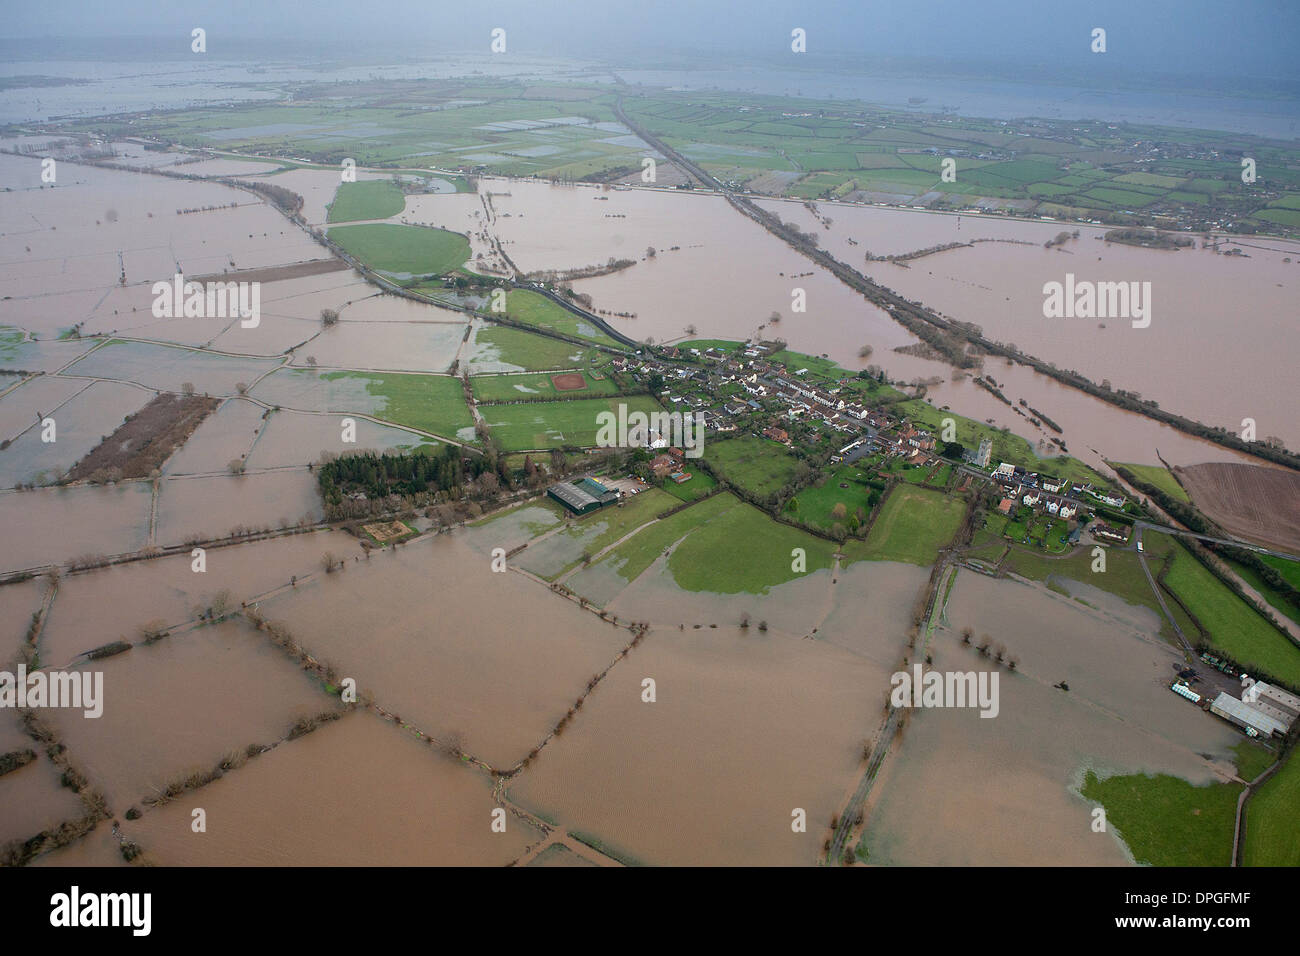 An aerial view of a small village between Taunton and Yeovil on the Somerset Levels - Stock Image